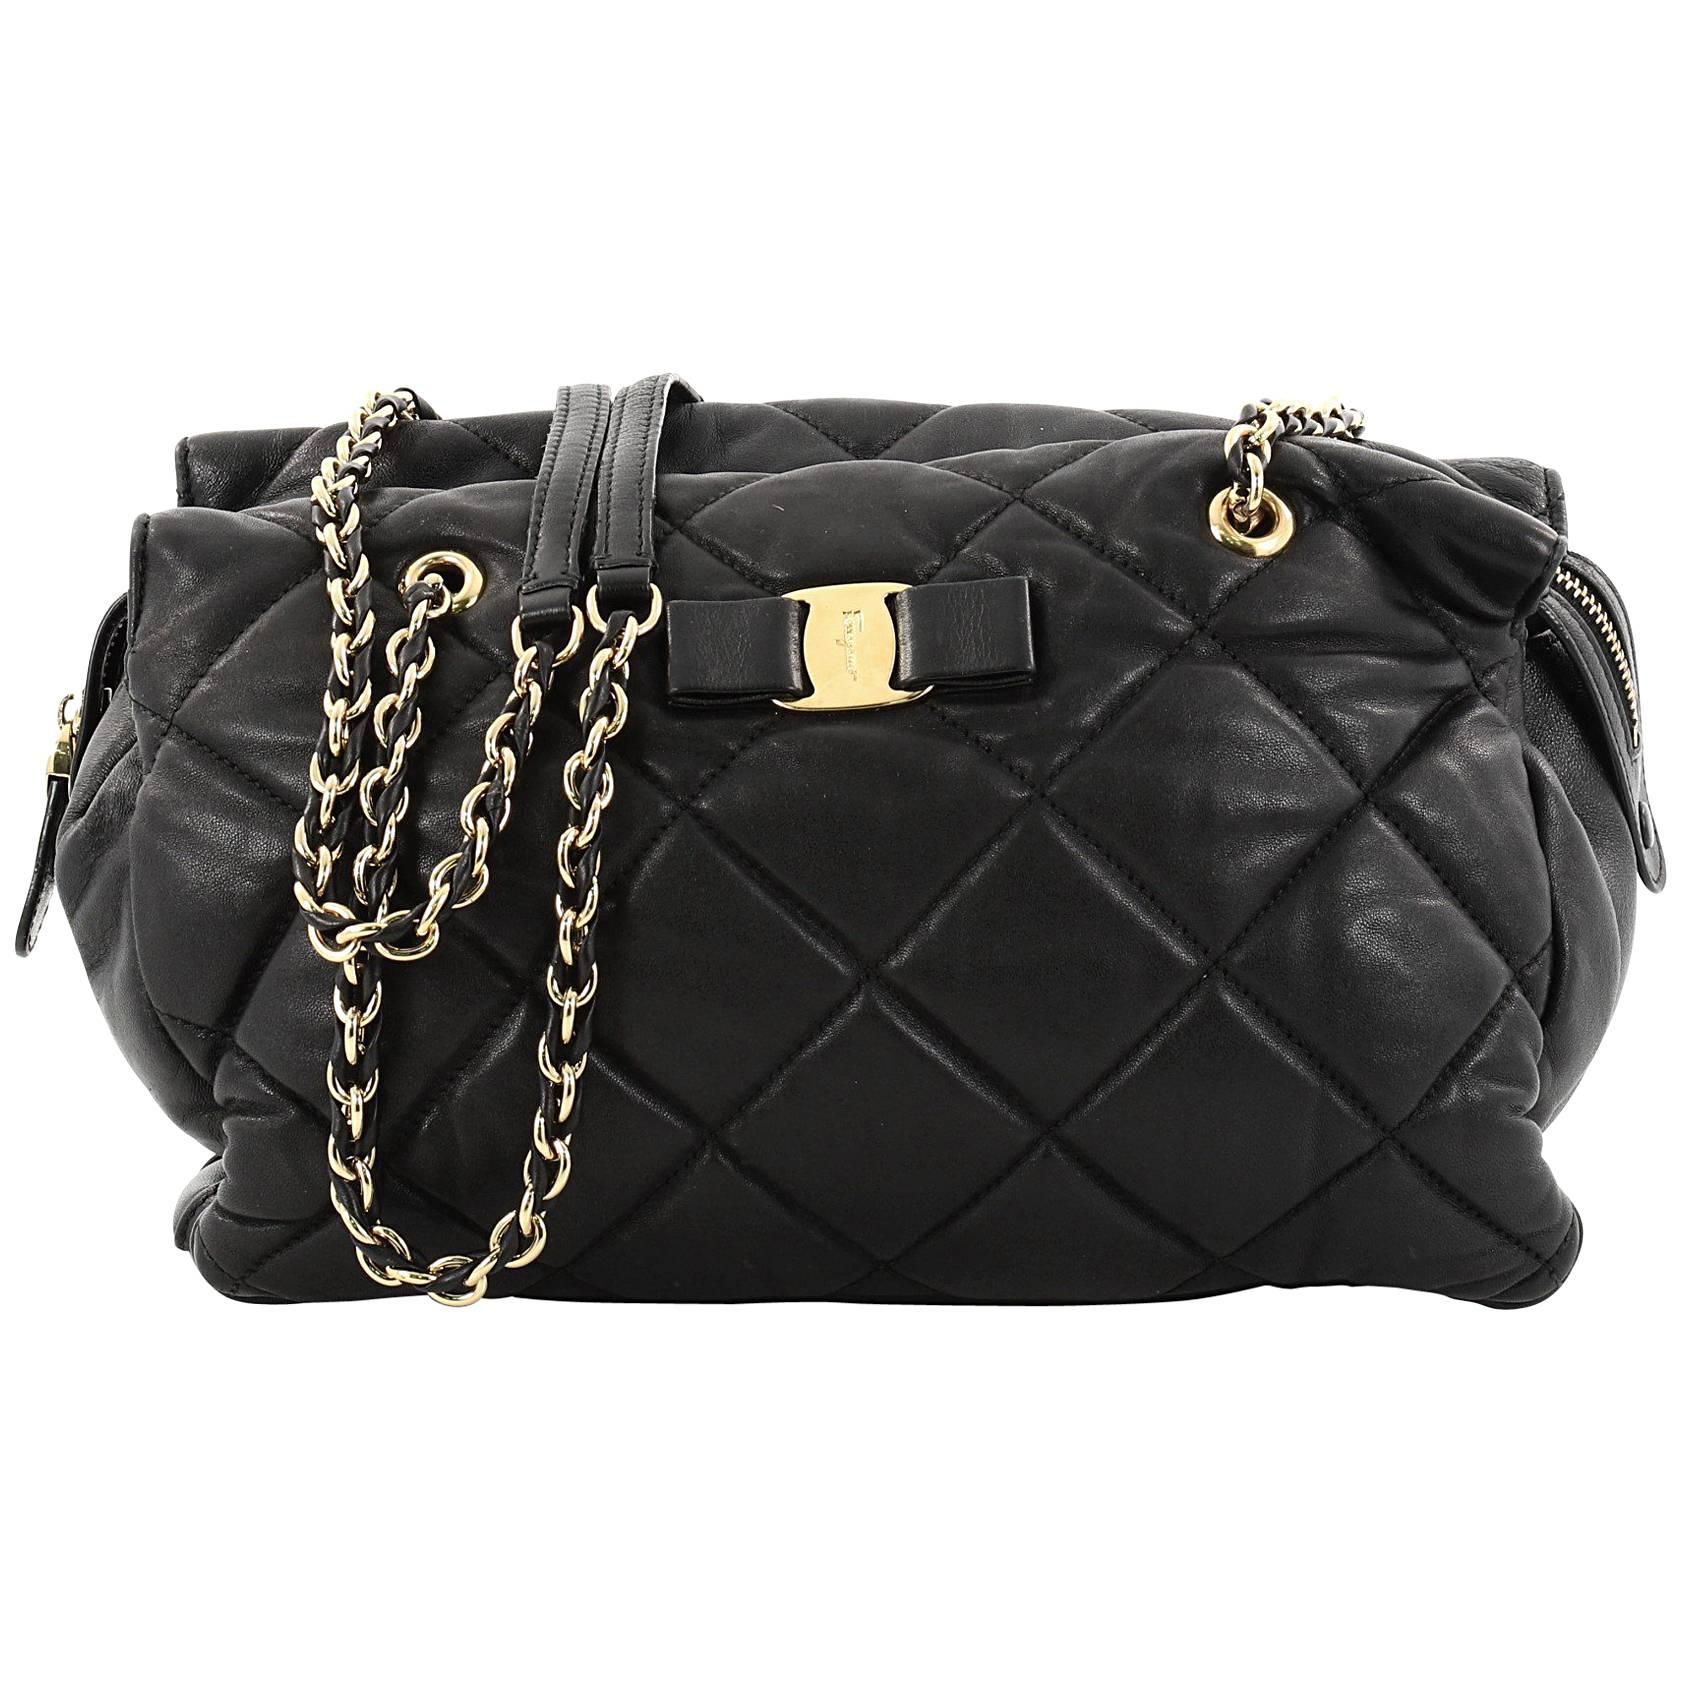 e40297a10439 Salvatore Ferragamo Ginette Chain Shoulder Bag Quilted Leather Medium at  1stdibs